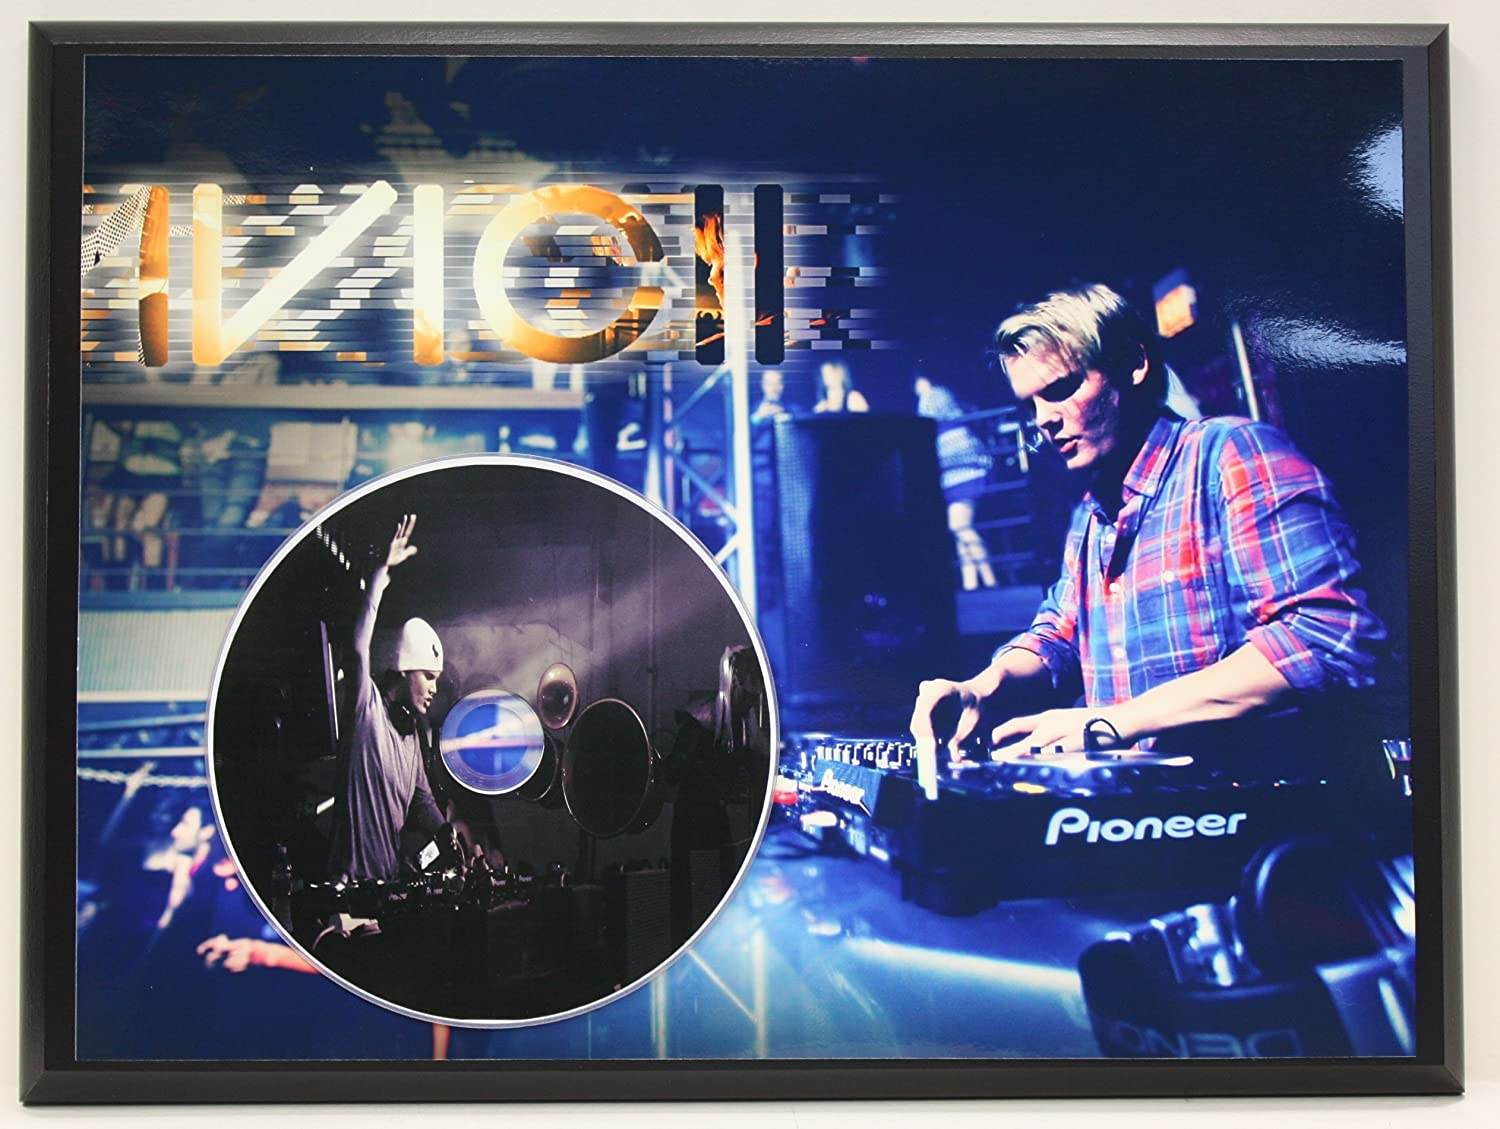 Avicii Limited Edition Picture Disc CD Rare Collectible Music Display Gold Record Outlet